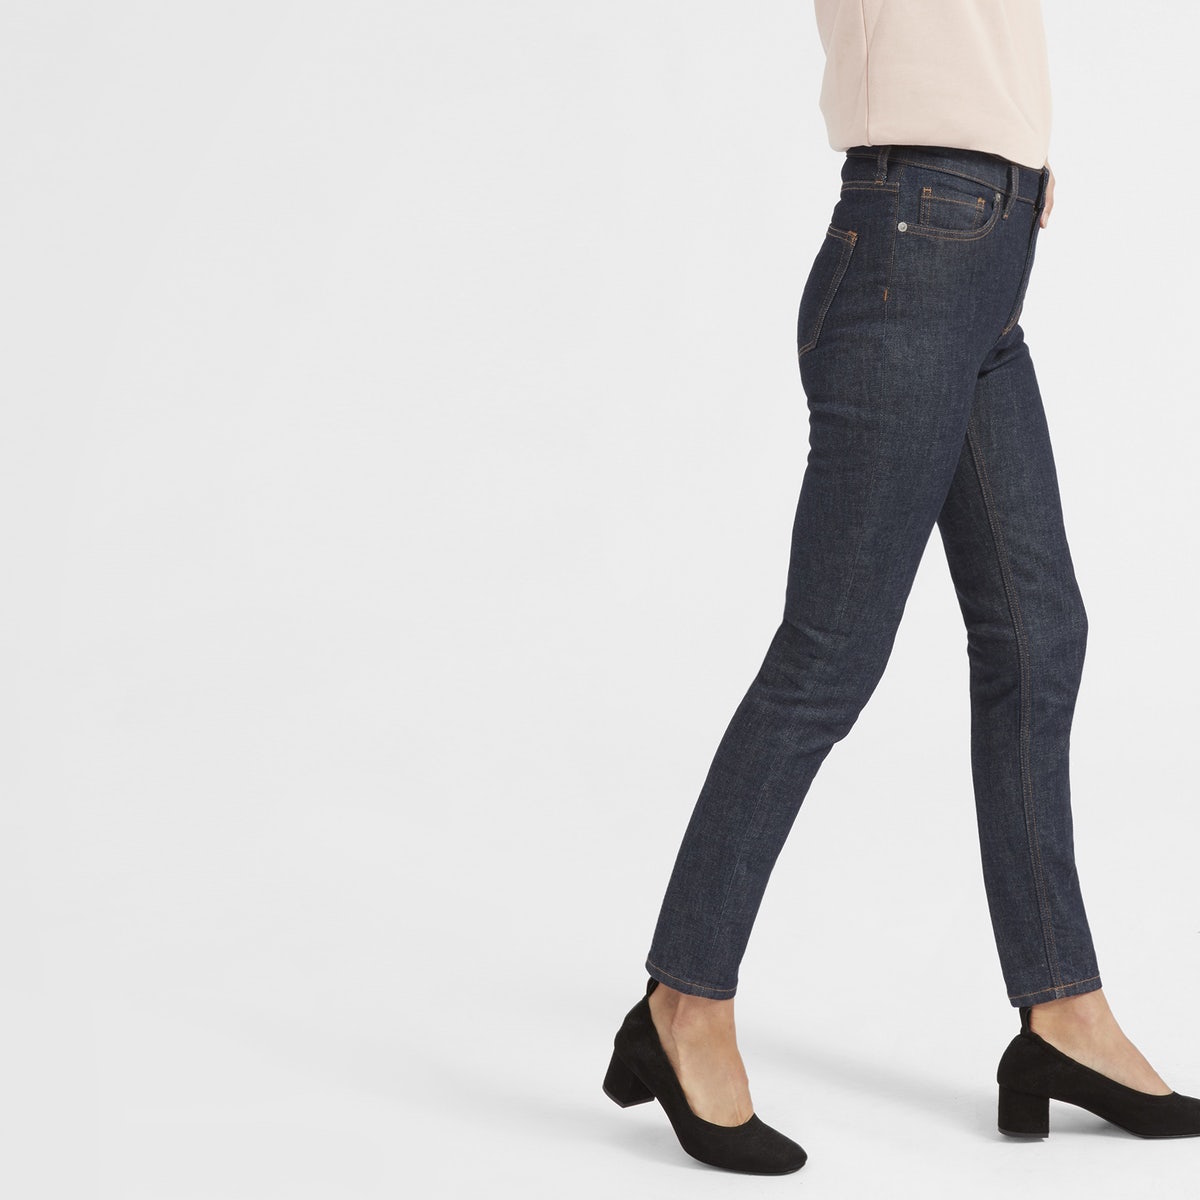 Everlane High-Rise Skinny Jeans Review